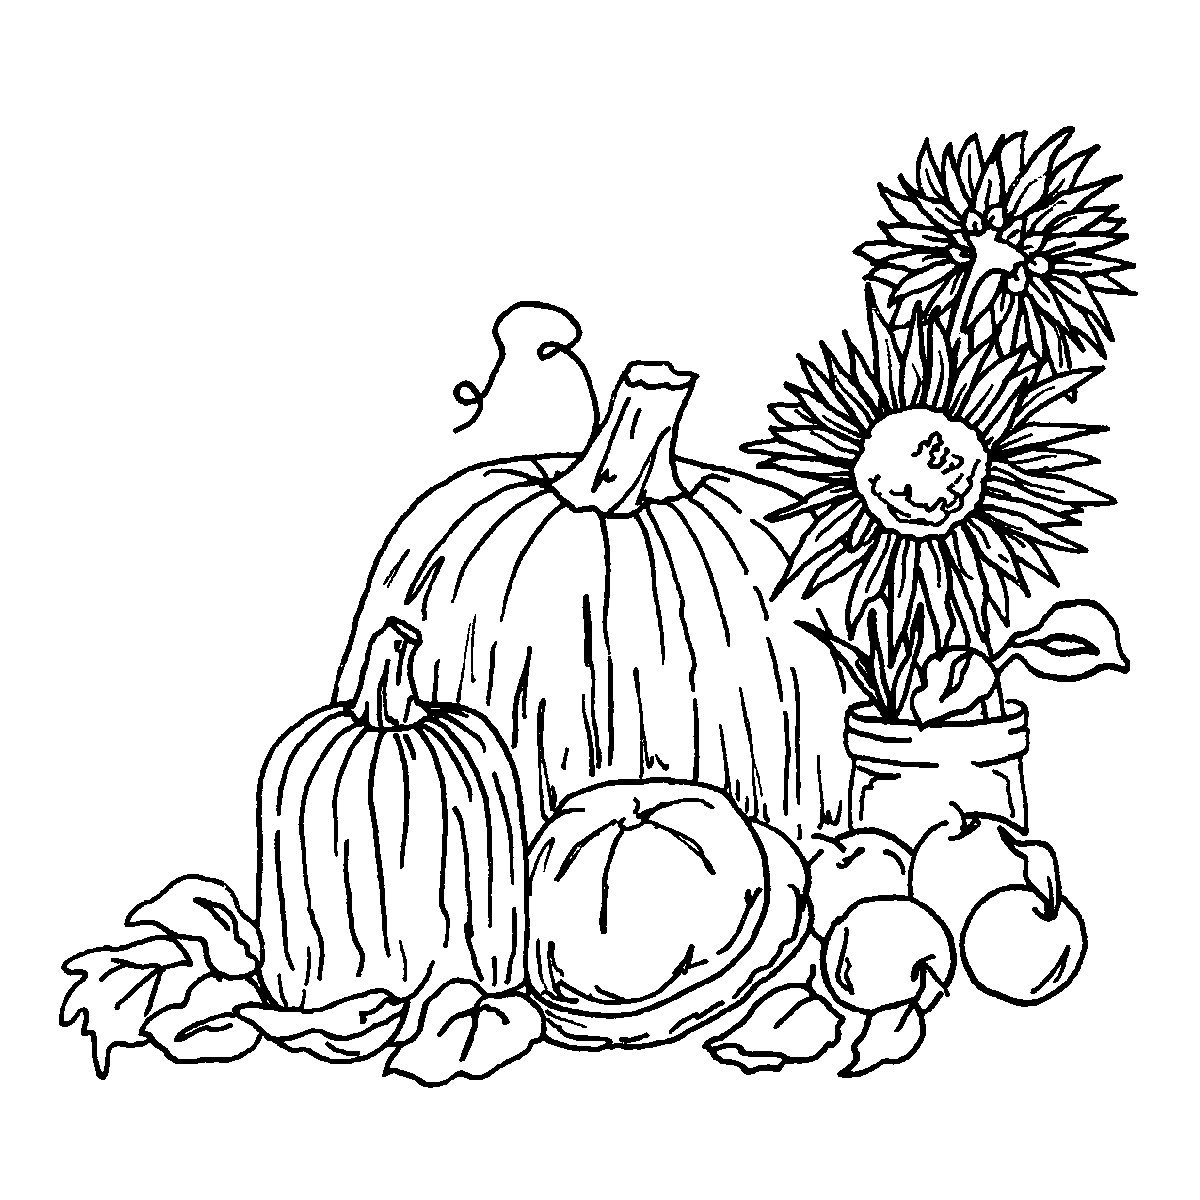 harvest colouring sheets free harvest coloring pages at getcoloringscom free harvest sheets colouring